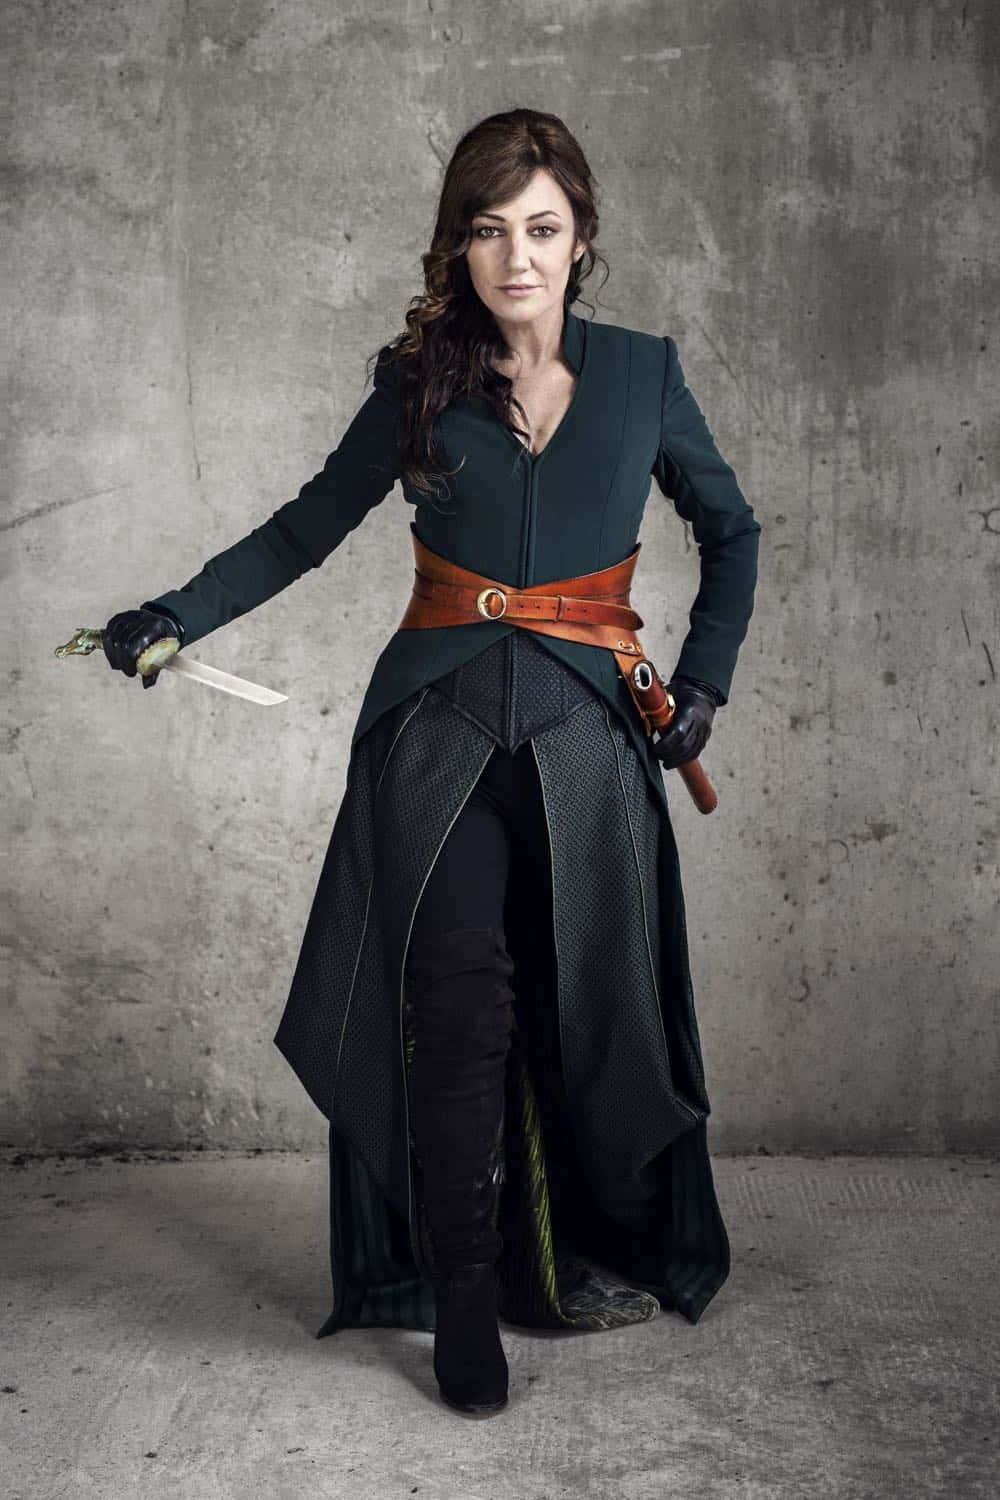 Orla Brady as Lydia - Into the Badlands _ Season 3, Gallery - Photo Credit: Alan Clarke/AMC